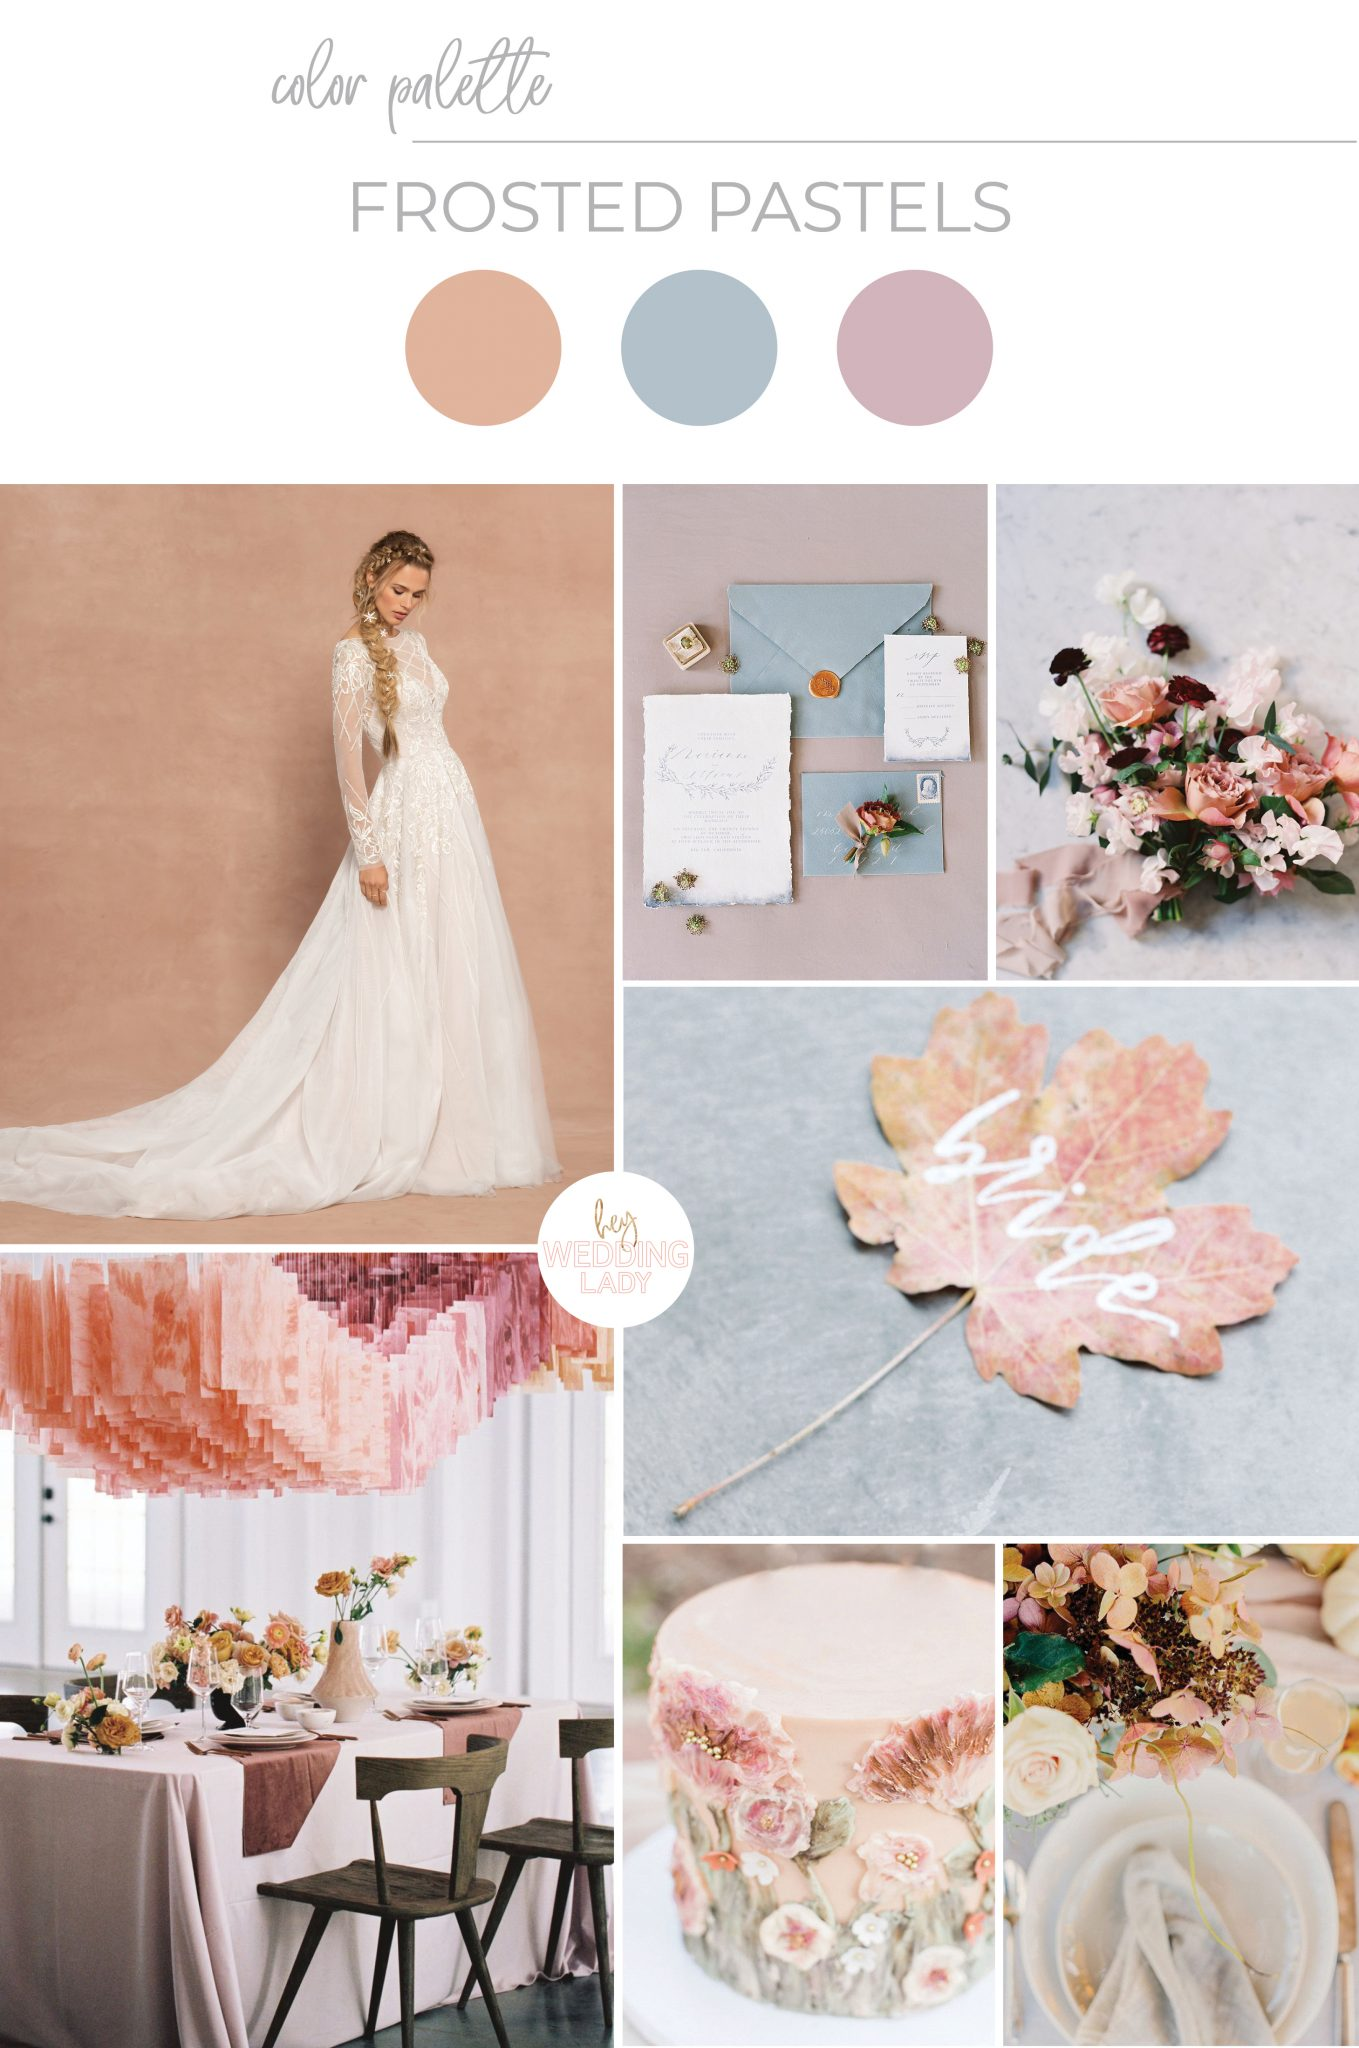 Modern Pastel Wedding Inspiration with Frosted Fall Colors inspired by Frozen 2